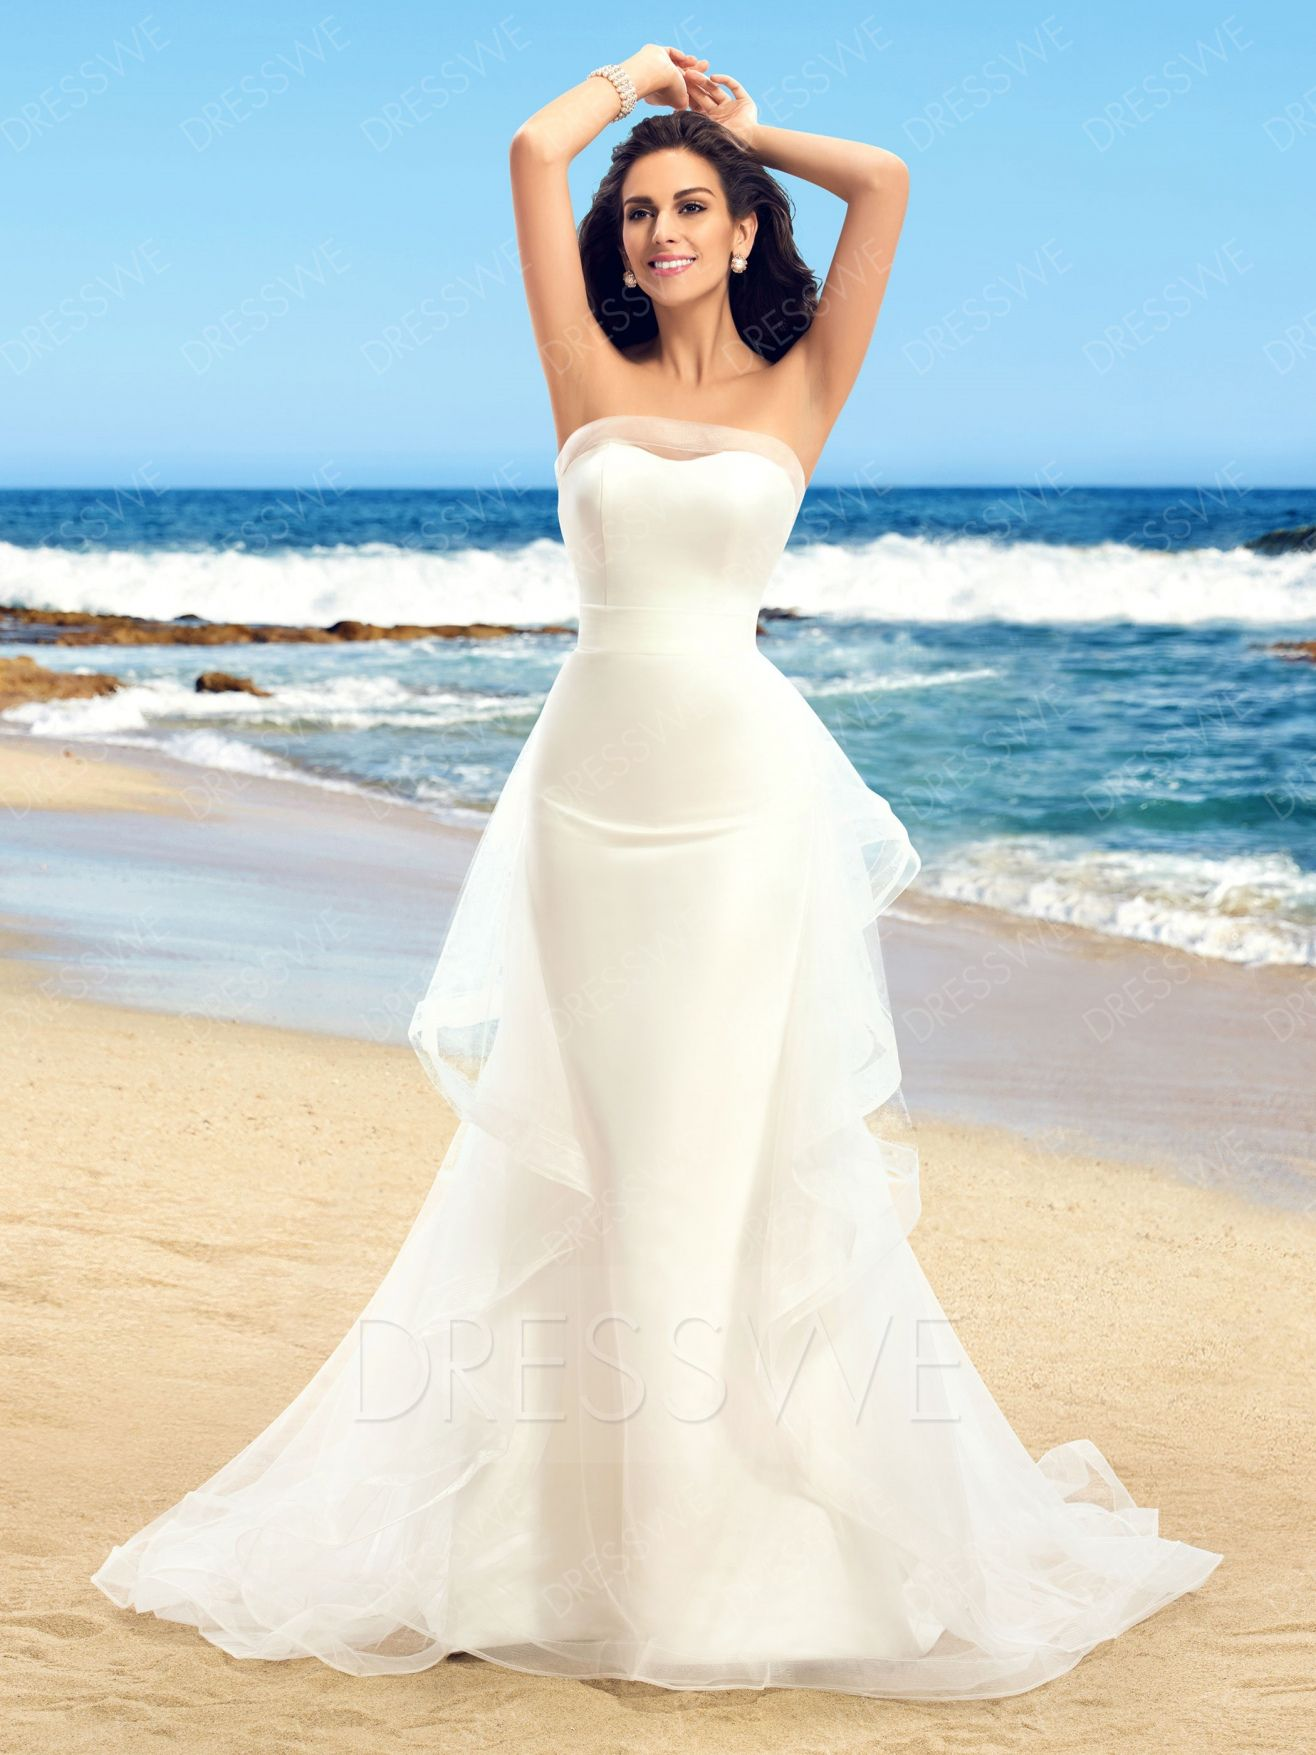 2018 Cheap Wedding Dress Under 100 - Women s Dresses for Wedding Guest  Check more at http 959f255c1e